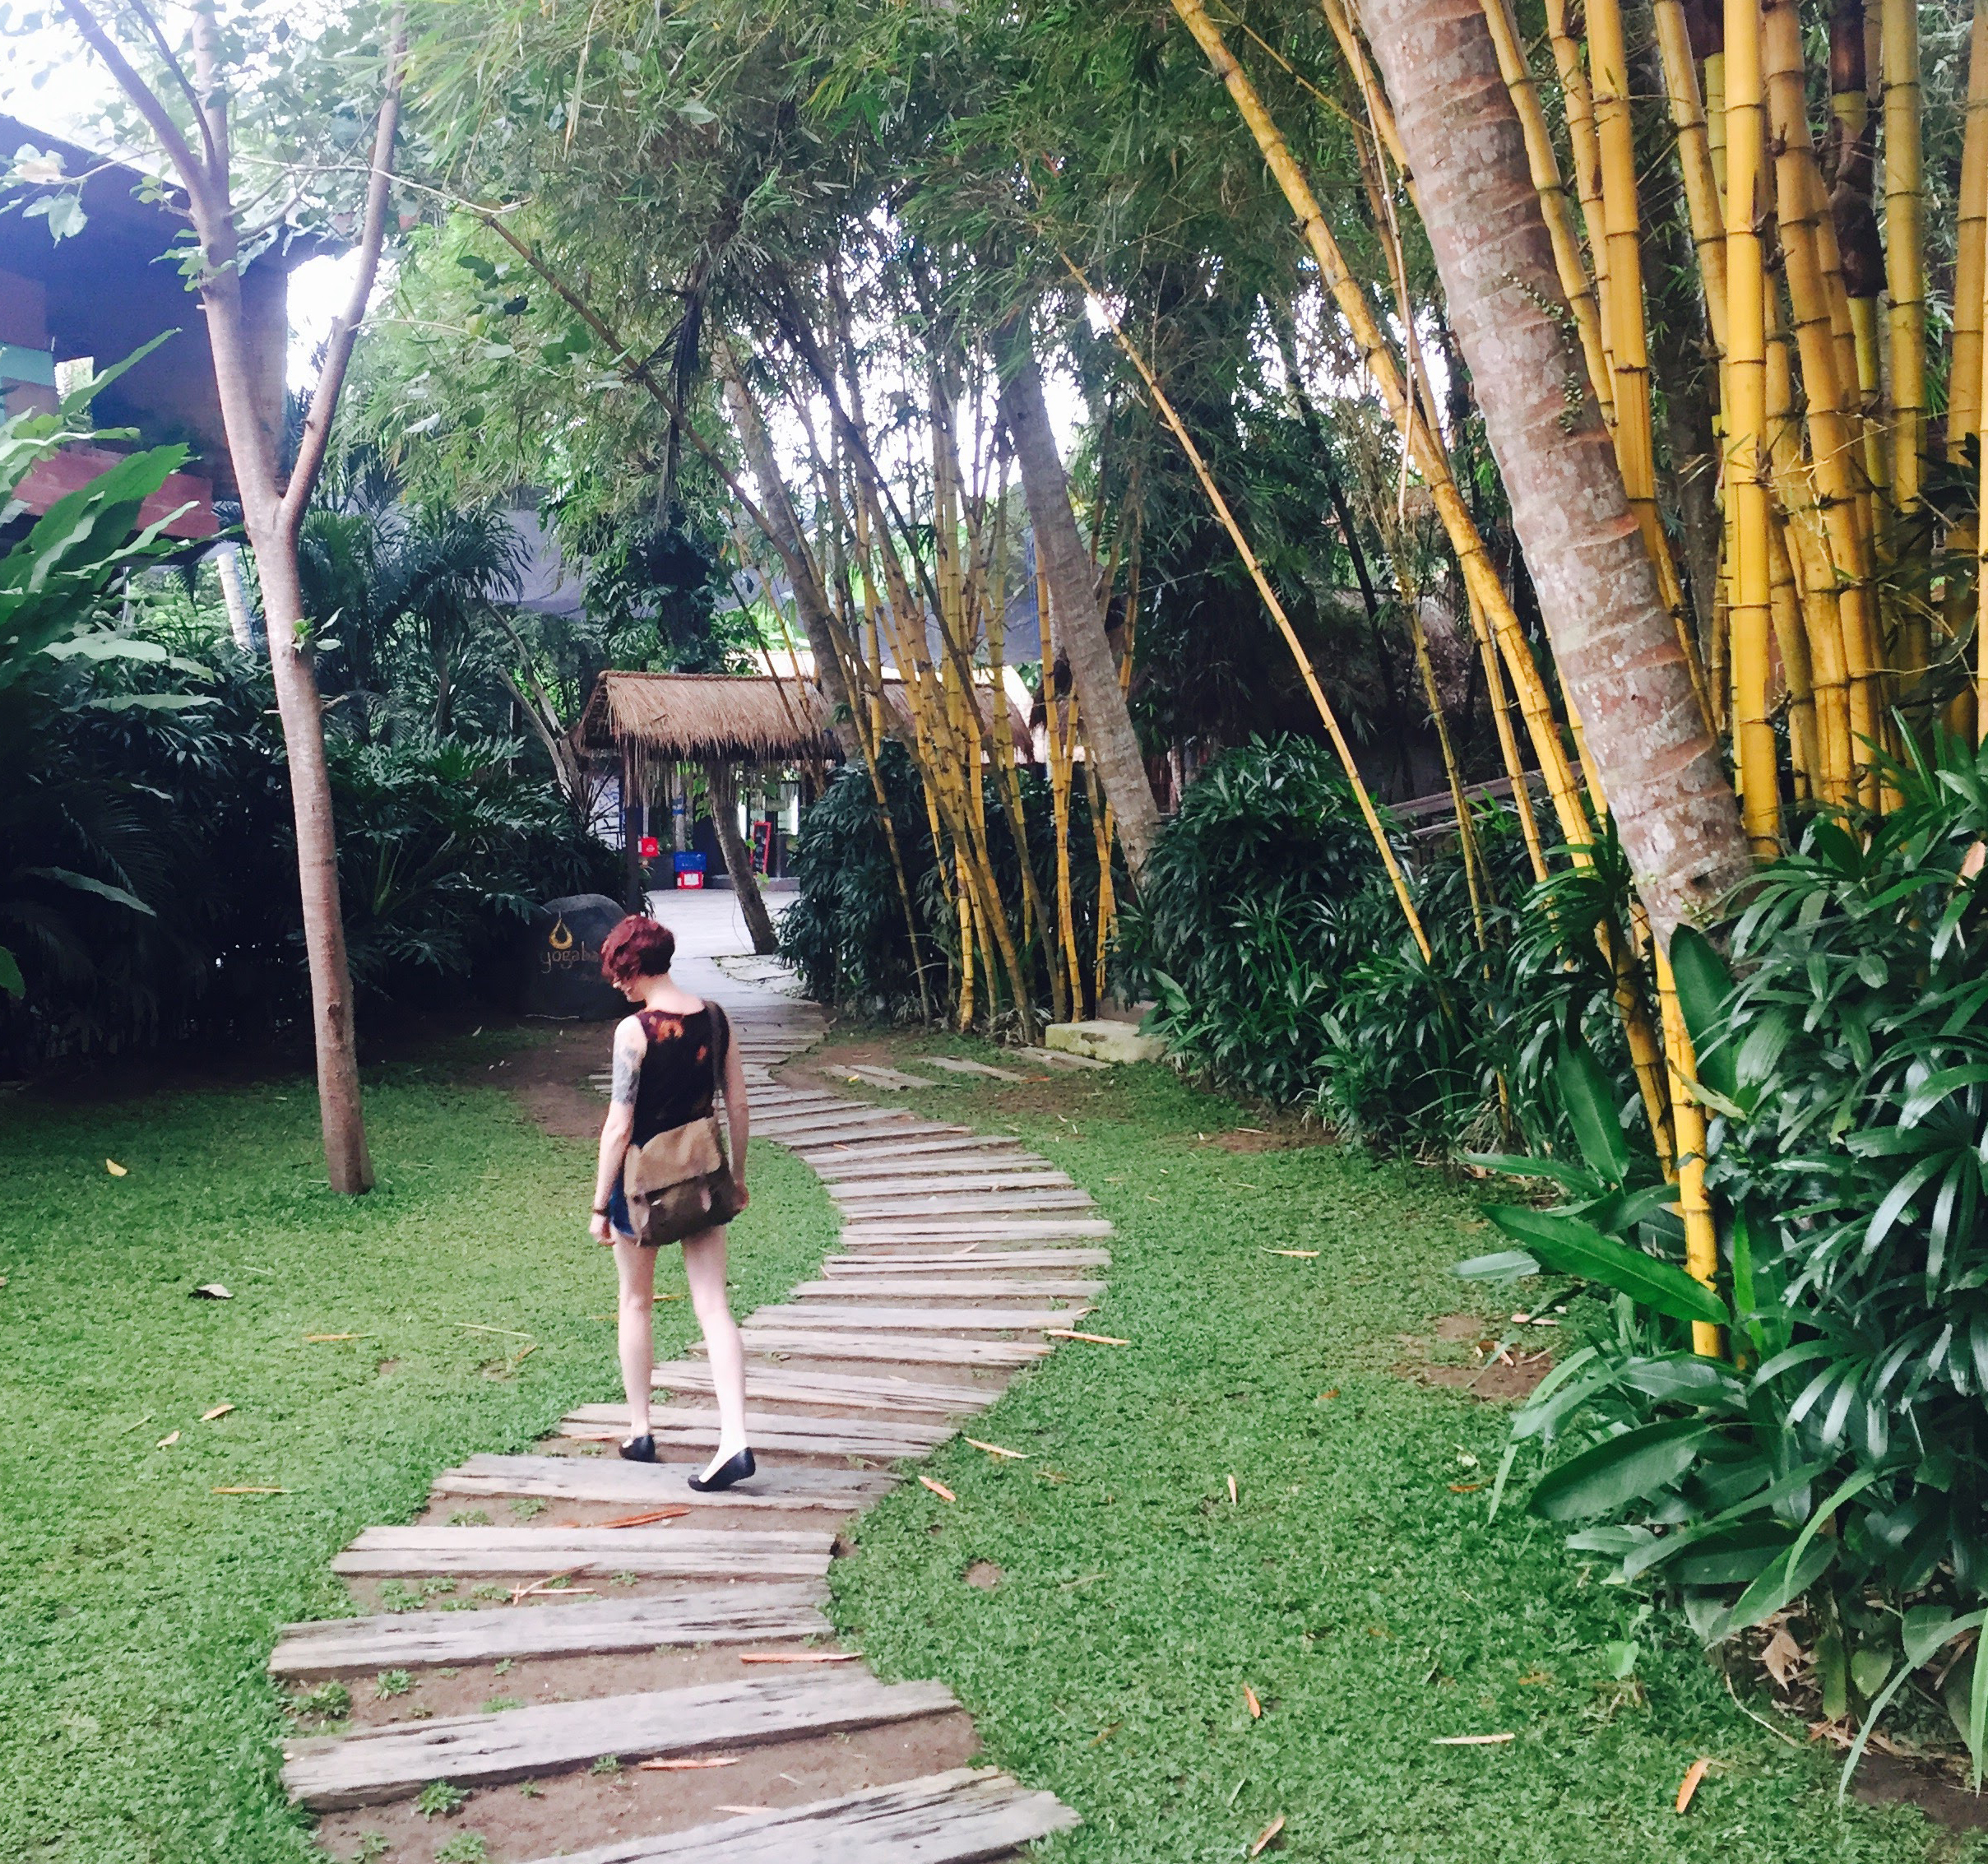 bamboo_walking.jpg